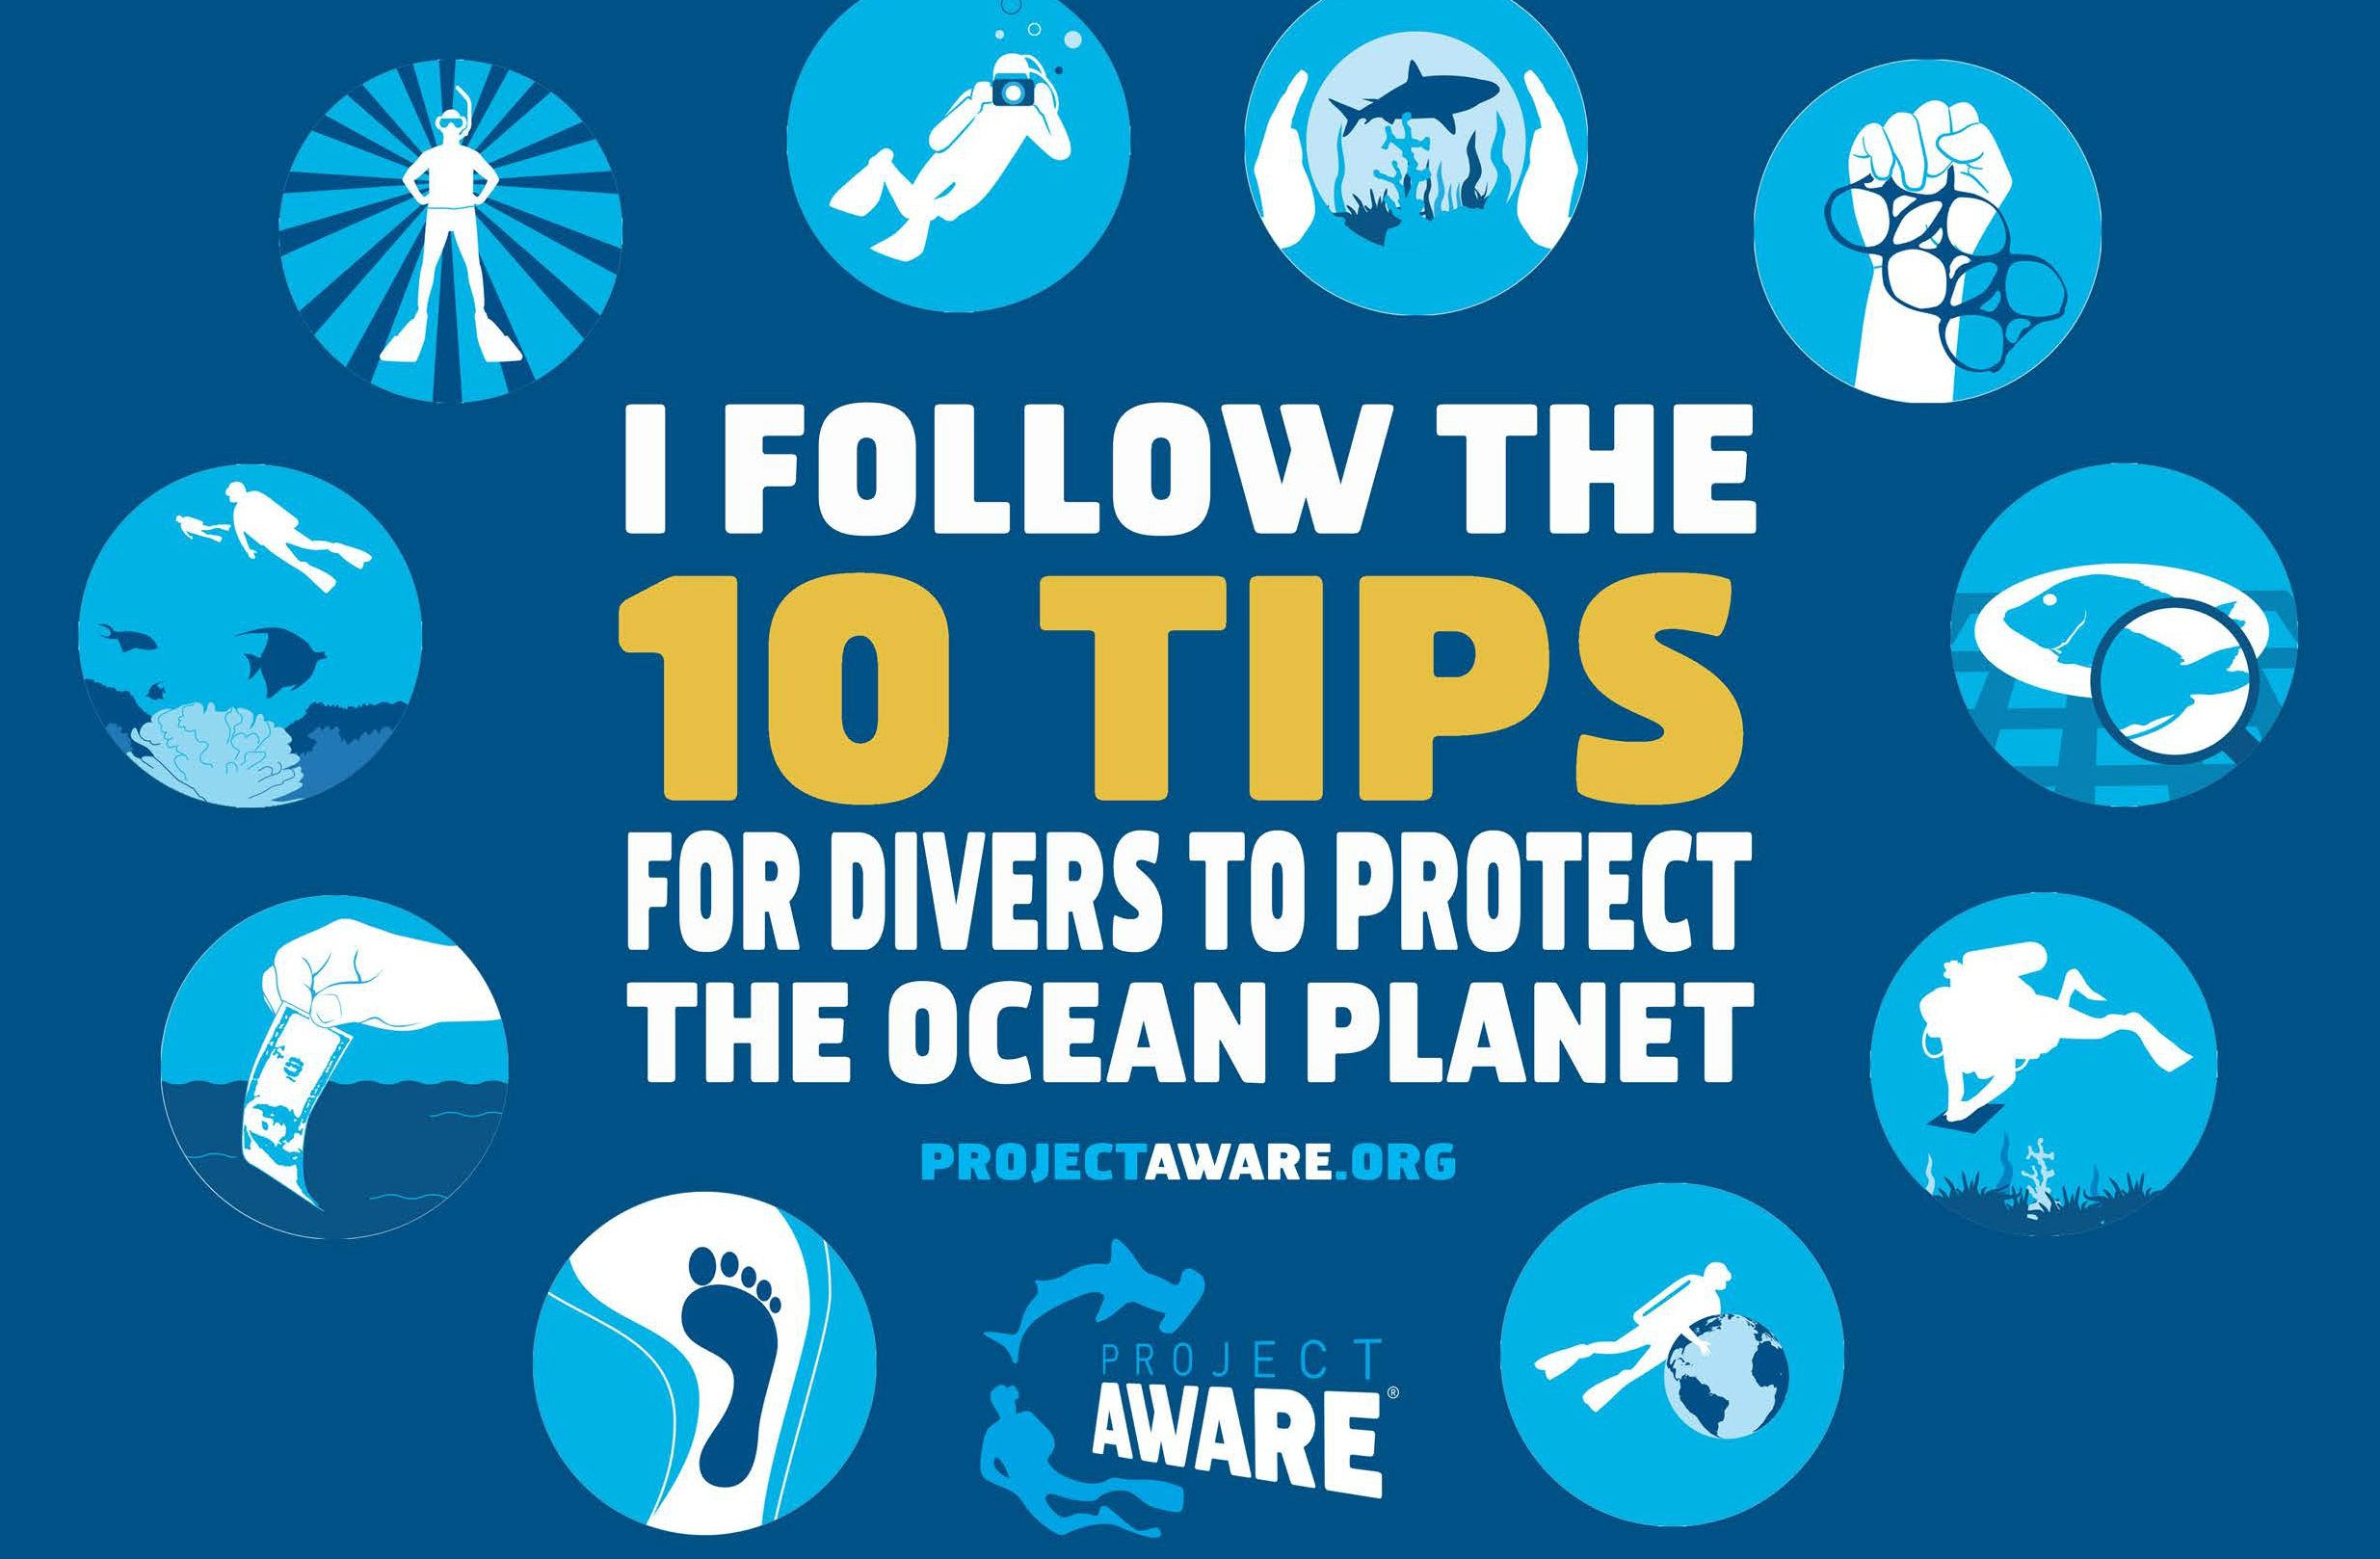 Project AWARE 10 Tips For Divers To Protect The Ocean Planet